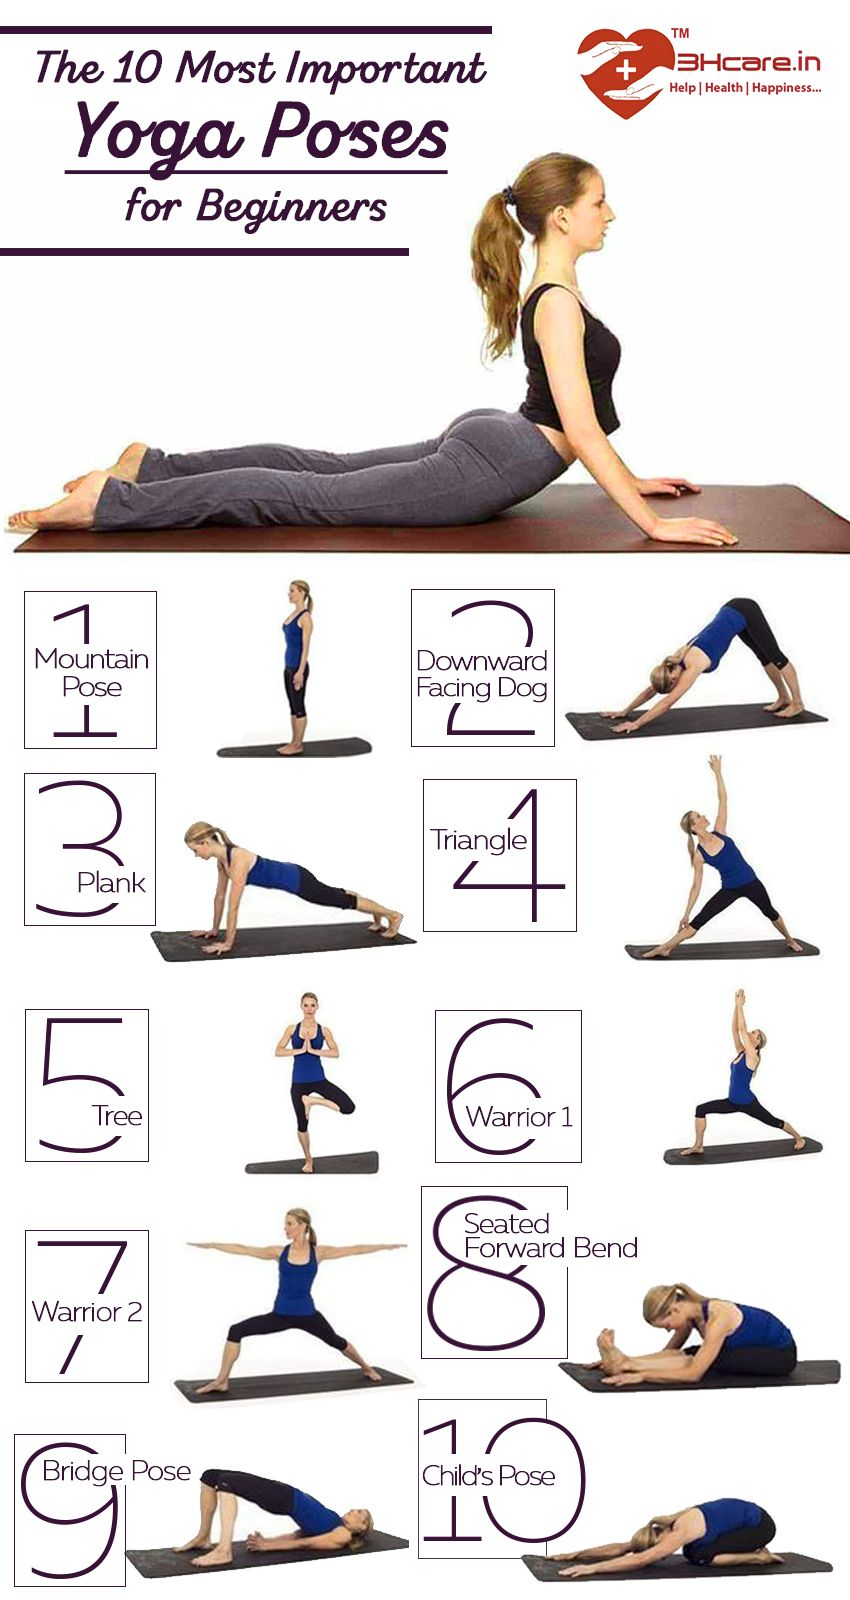 The 10 Most Important Yoga Poses For Beginners Healthtipsoftheday Health 3hcare Healthwith3hcare Hea Yoga Asanas Essential Yoga Poses Cool Yoga Poses